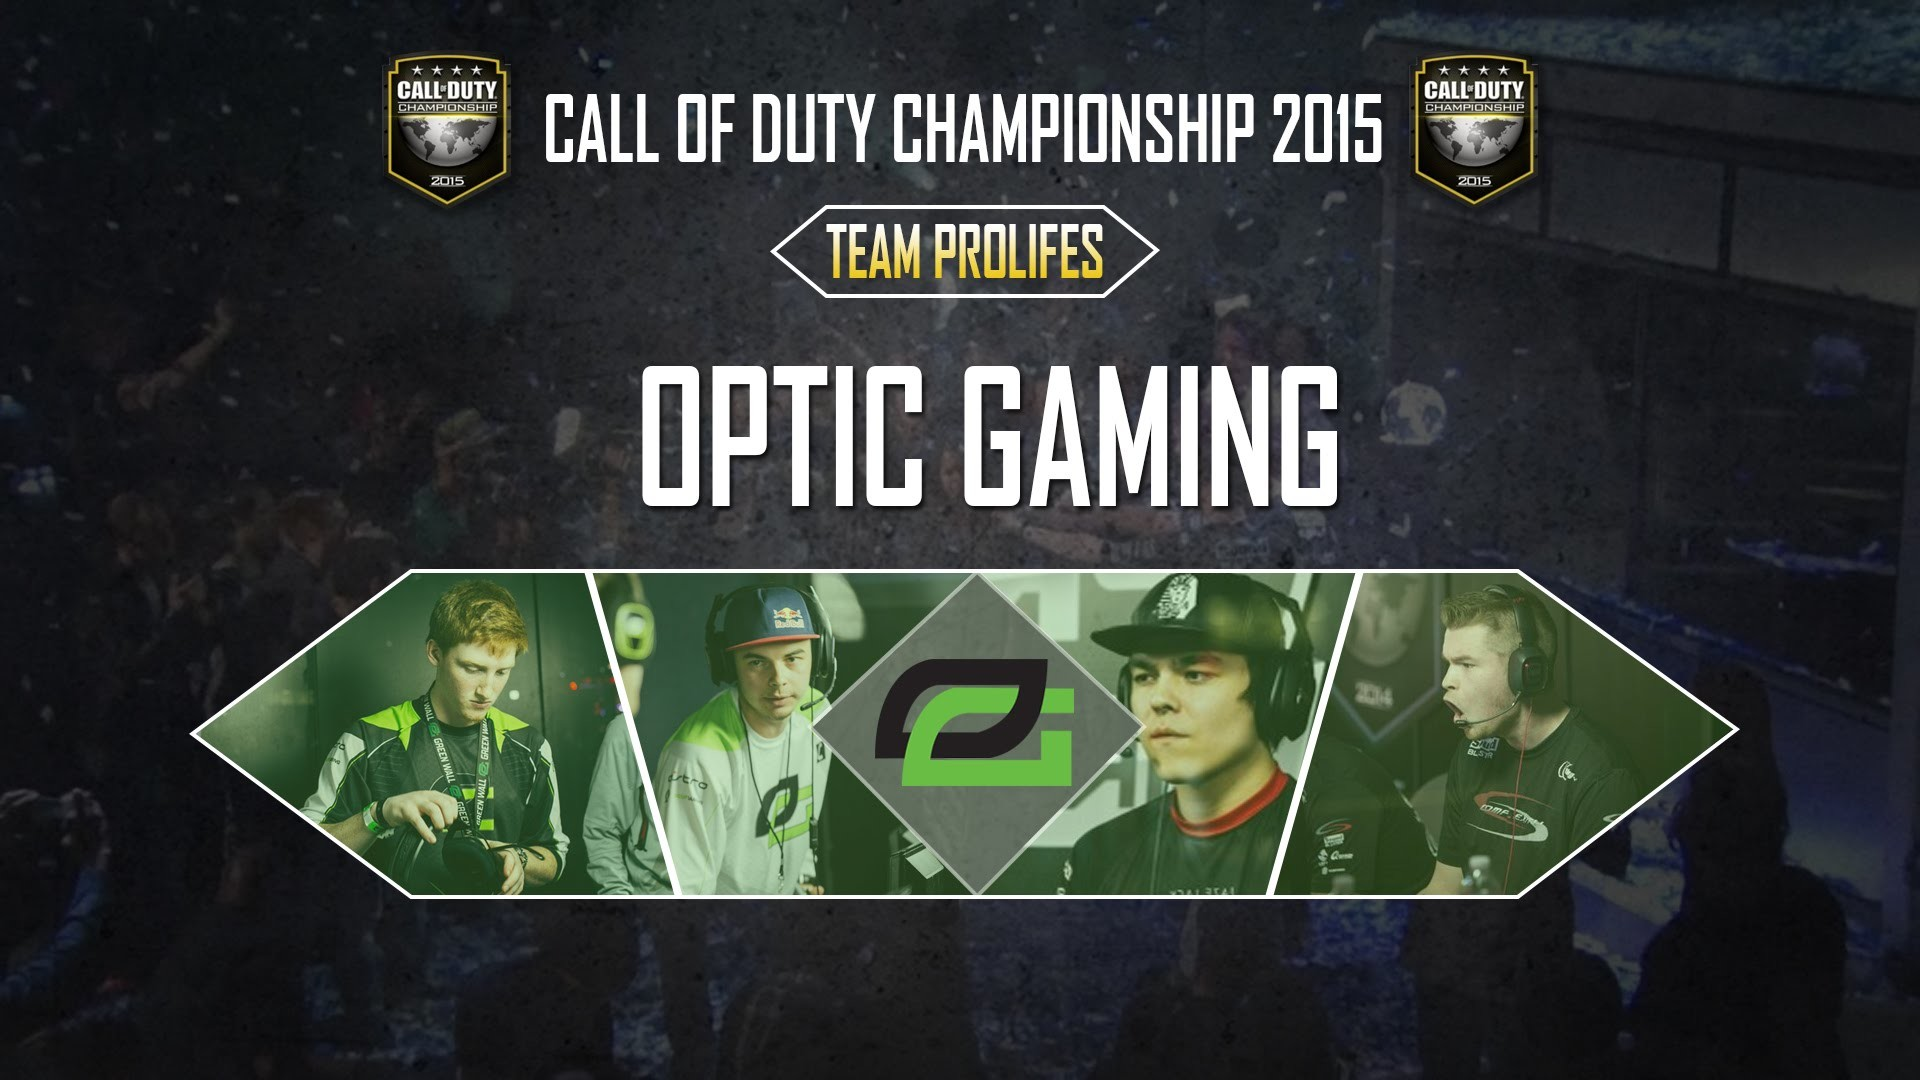 Res: 1920x1080, Optic gaming call of duty championship 2015.